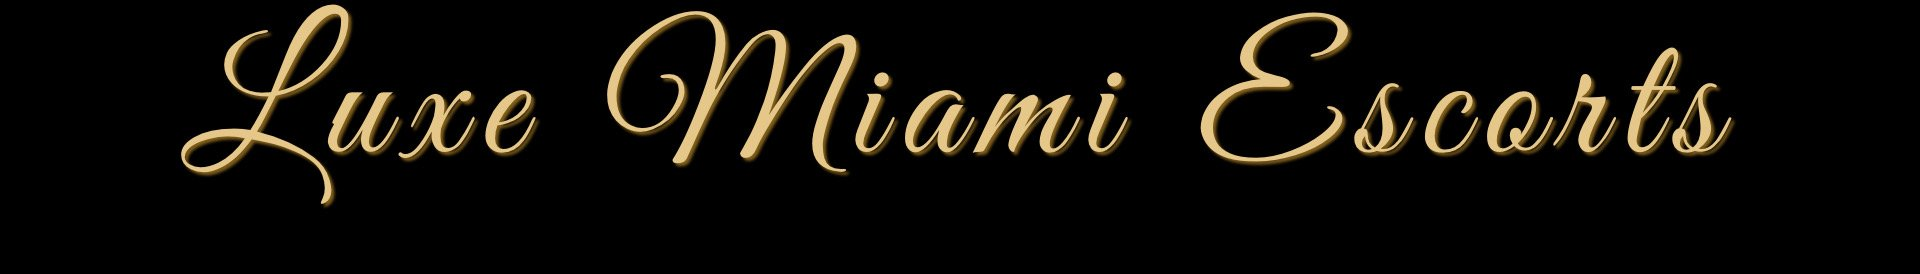 Luxe Miami Escorts - Miami escort header logo